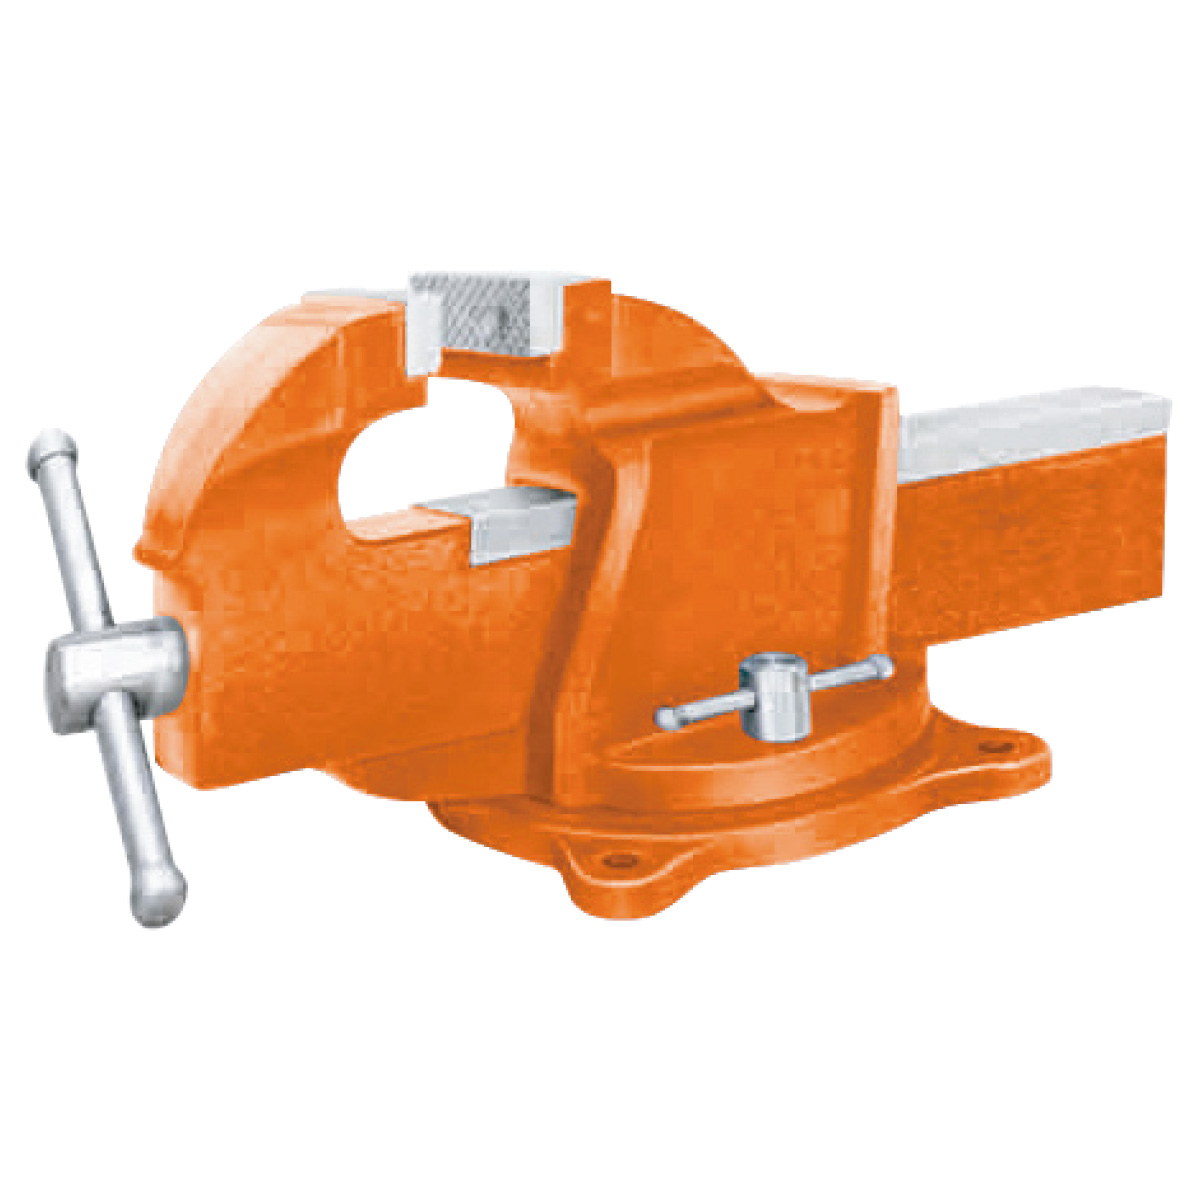 HEAVY DUTY BENCH VISE